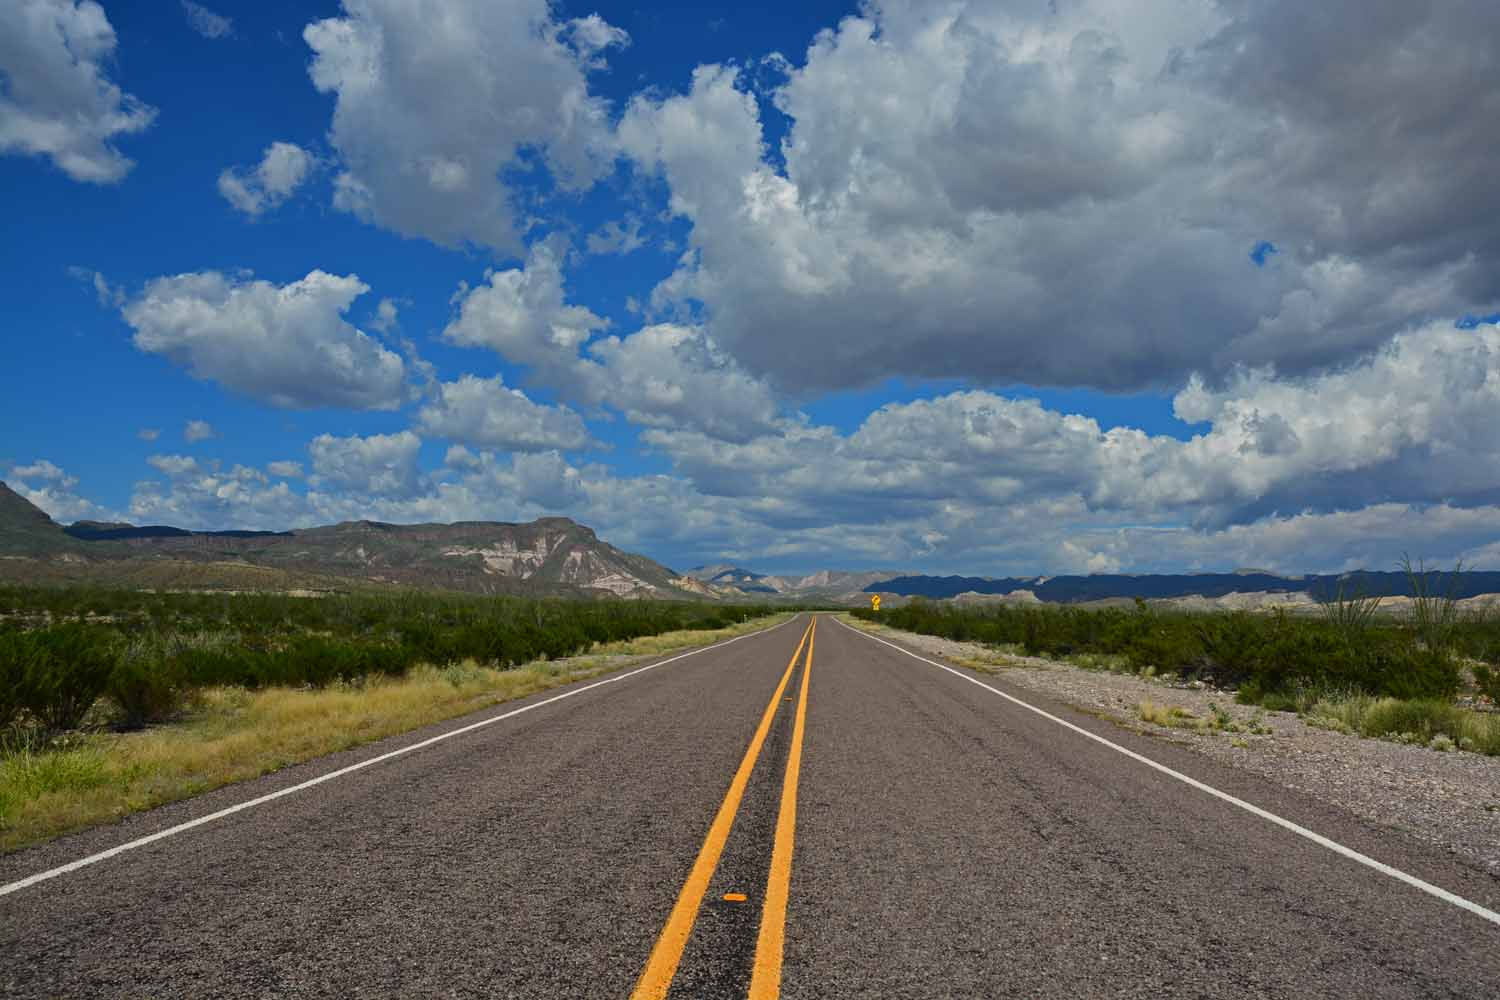 Love these endless road photos.  After Arizona we continue the trip through the desert heading south  to Texas.